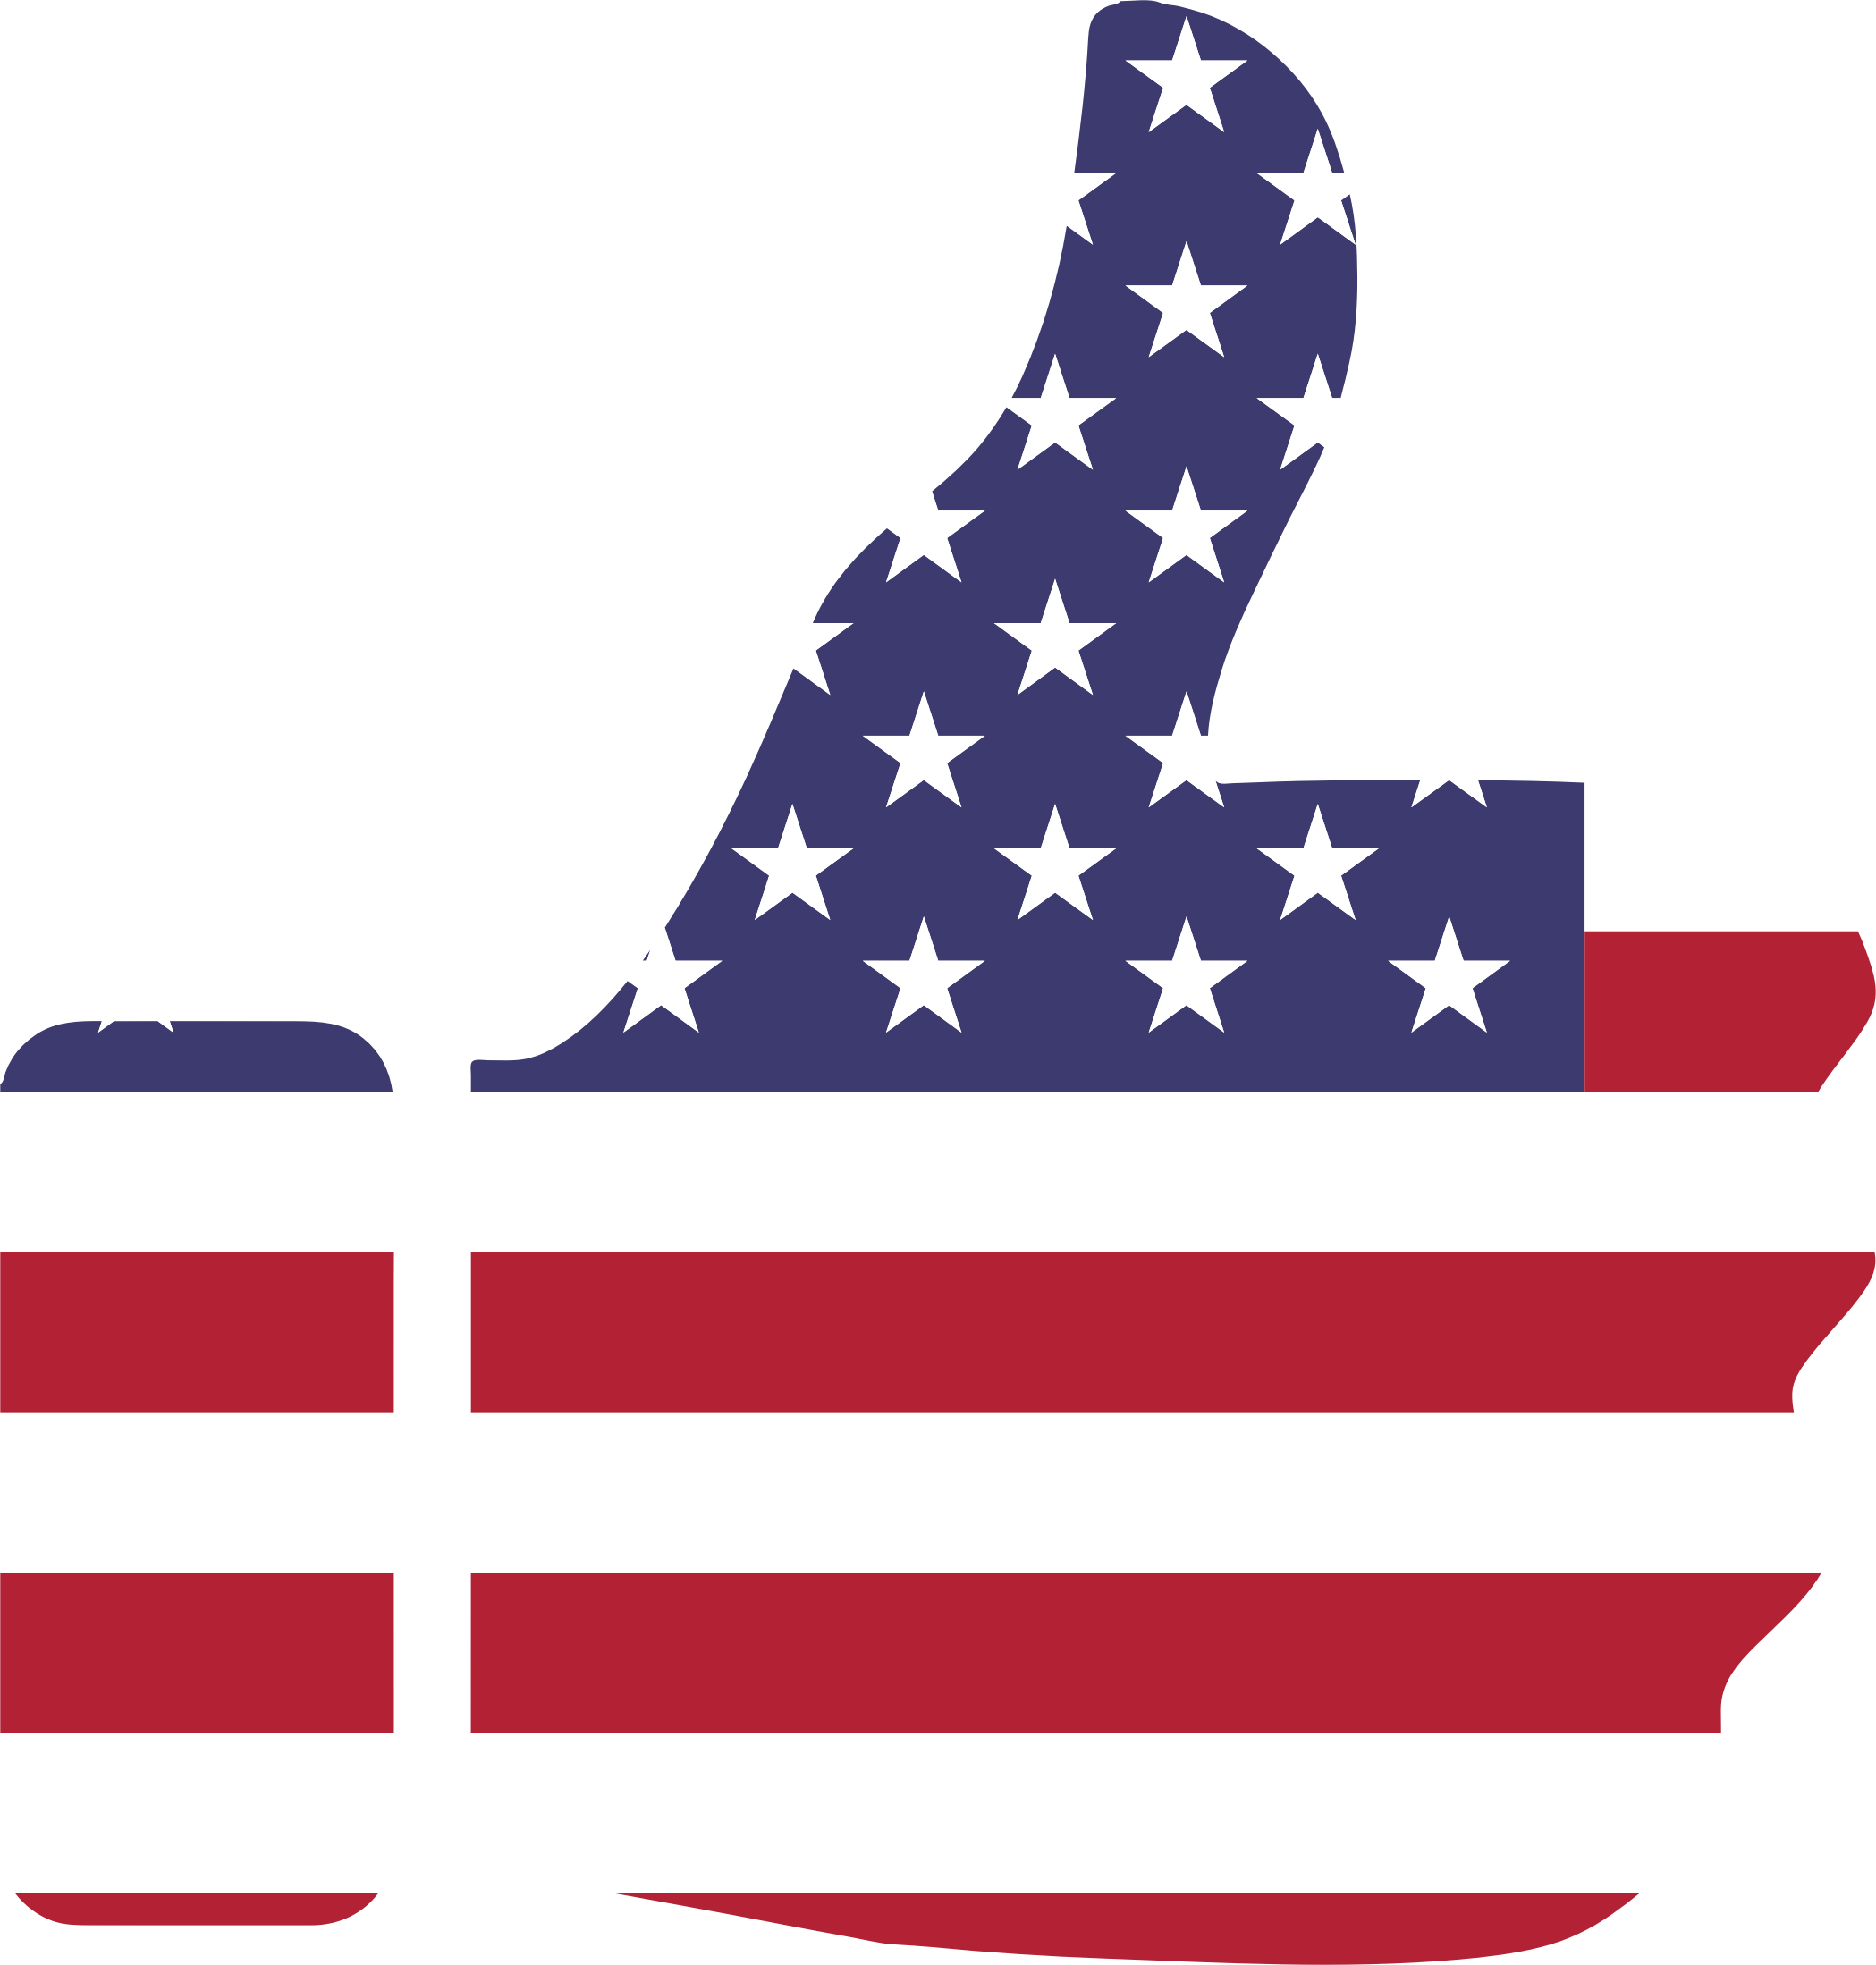 Thumbs Up American Flag by GDJ